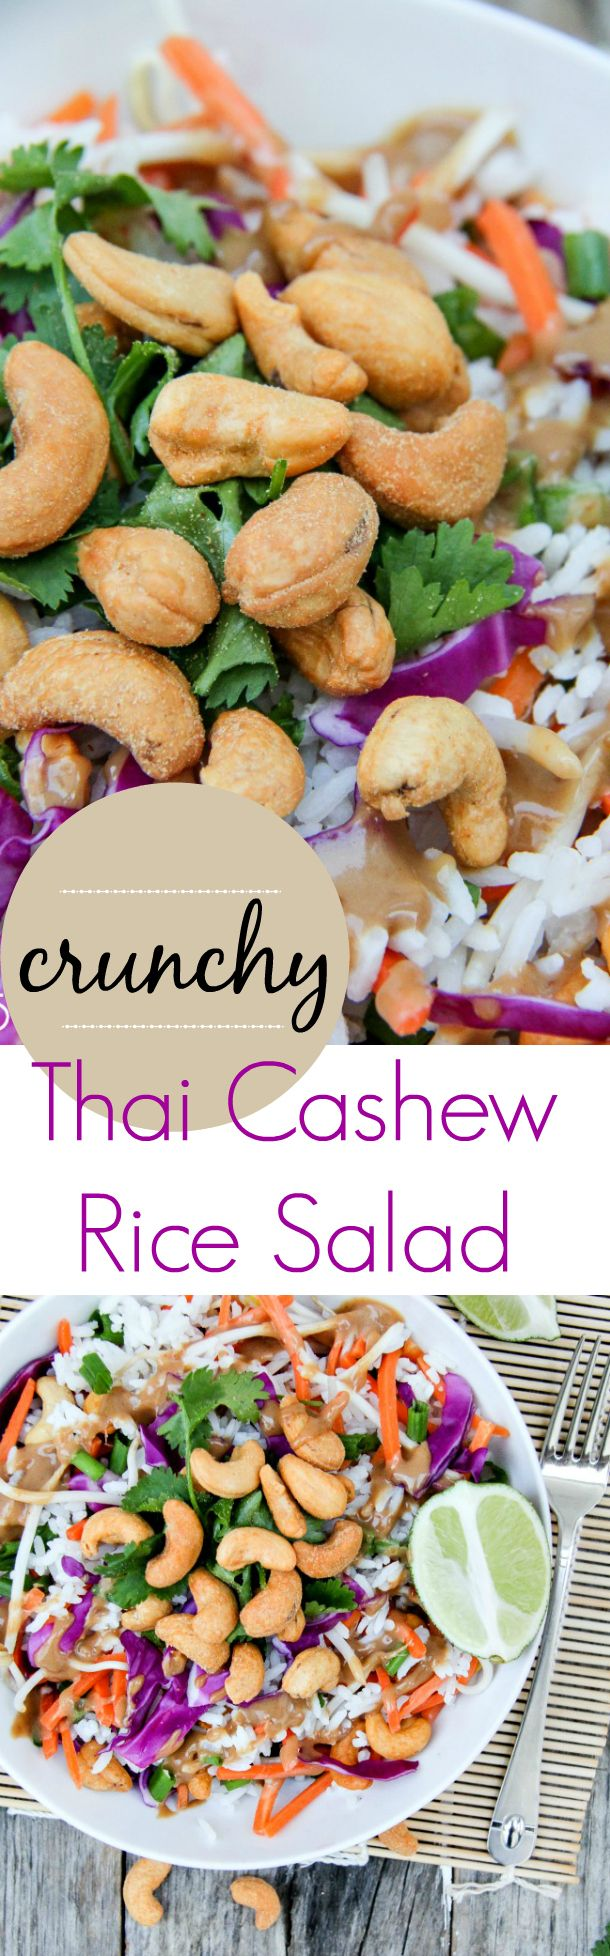 Crunchy Thai Cashew Rice Salad Recipe - Sponsored